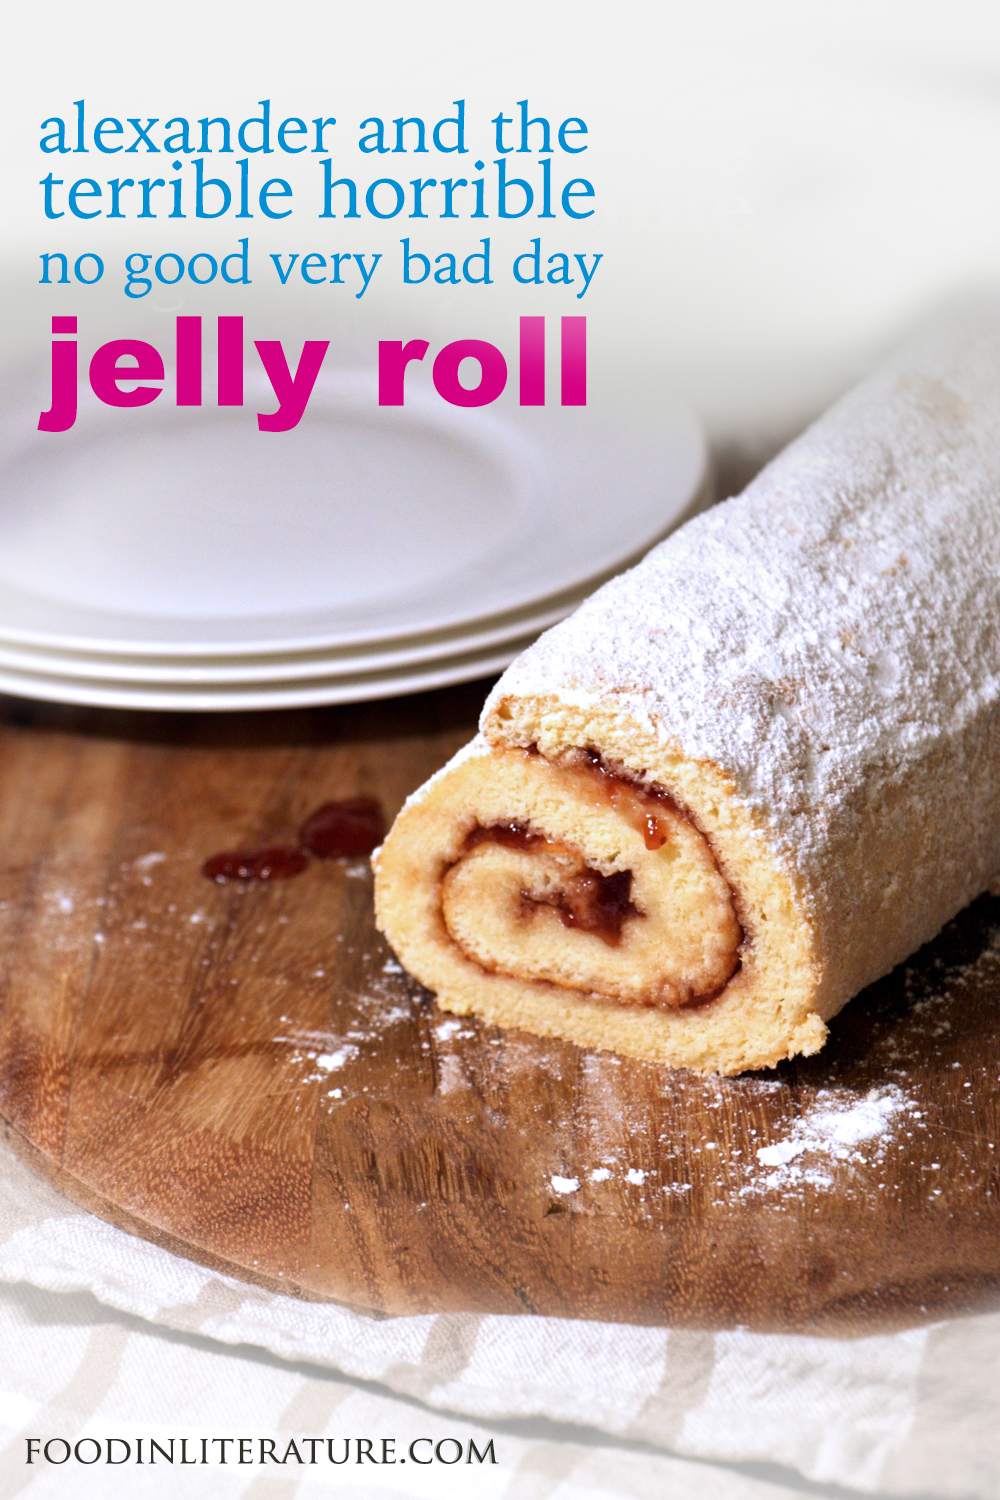 alexander-and-the-terrible-horrible-no-good-very-bad-day-jelly-roll-recipe